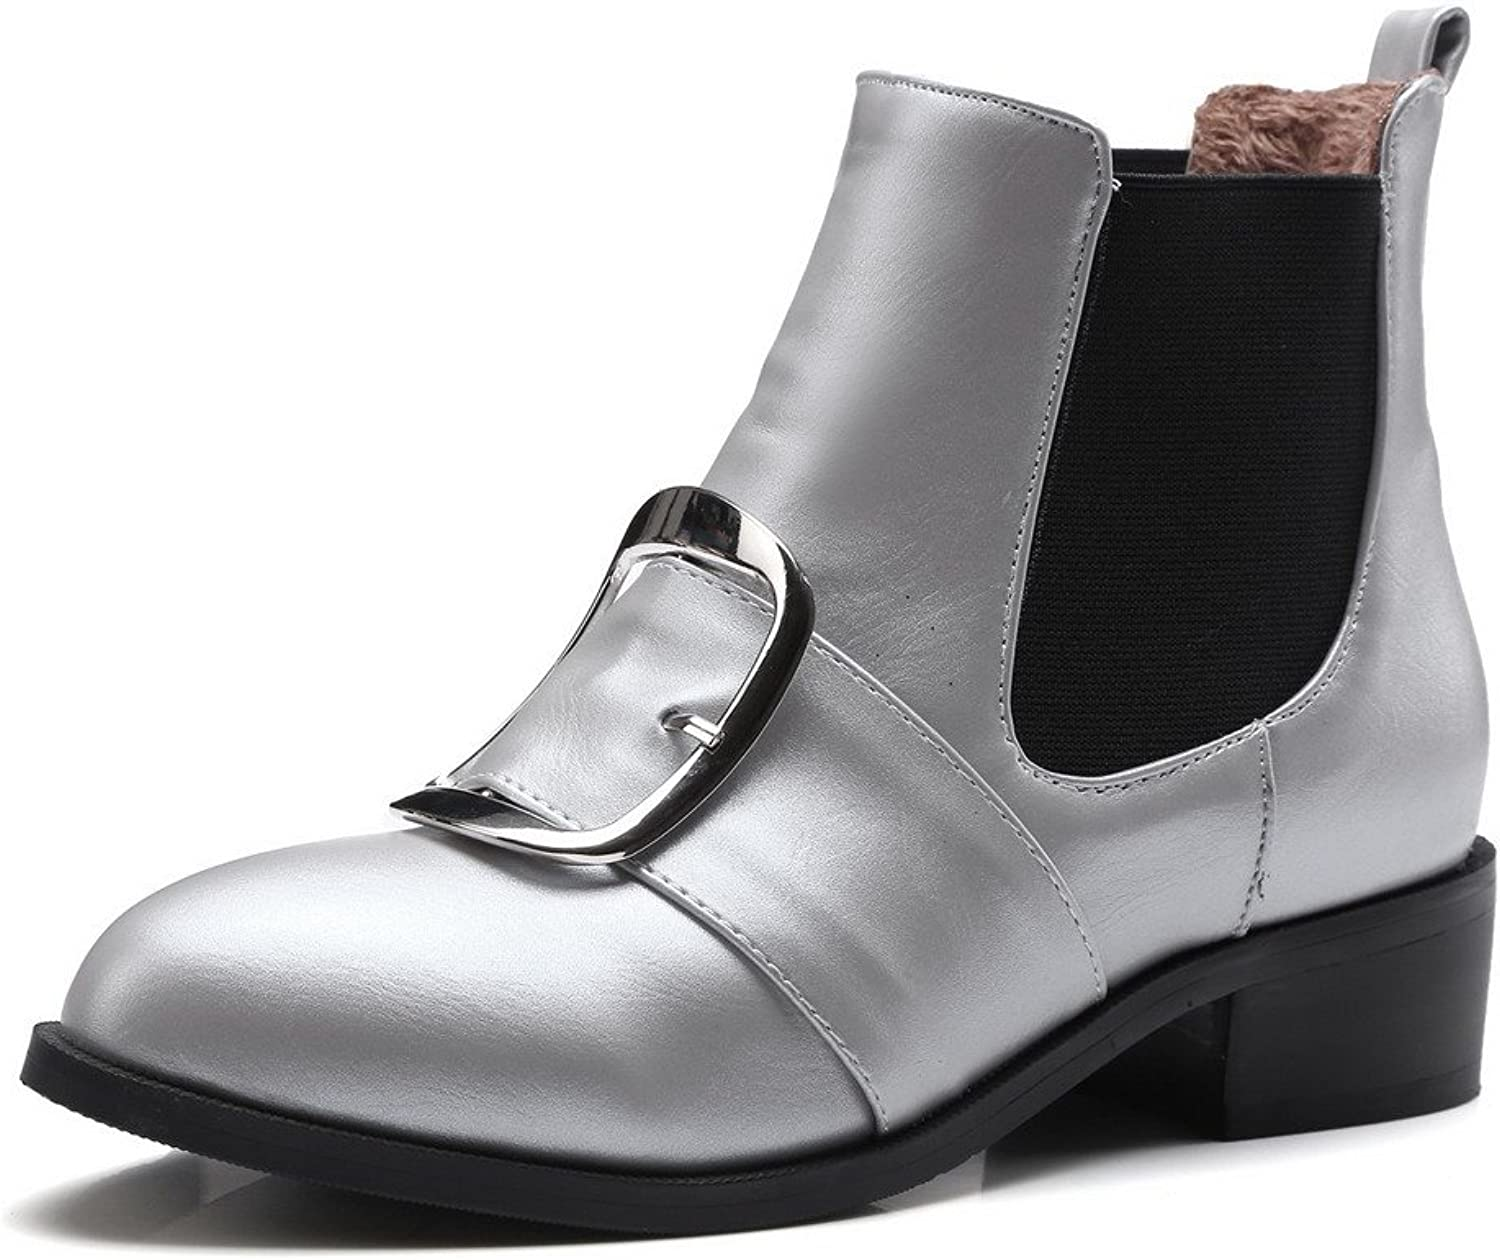 AmoonyFashion Women's Solid Low-Heels Round Closed Toe PU Pull-On Boots